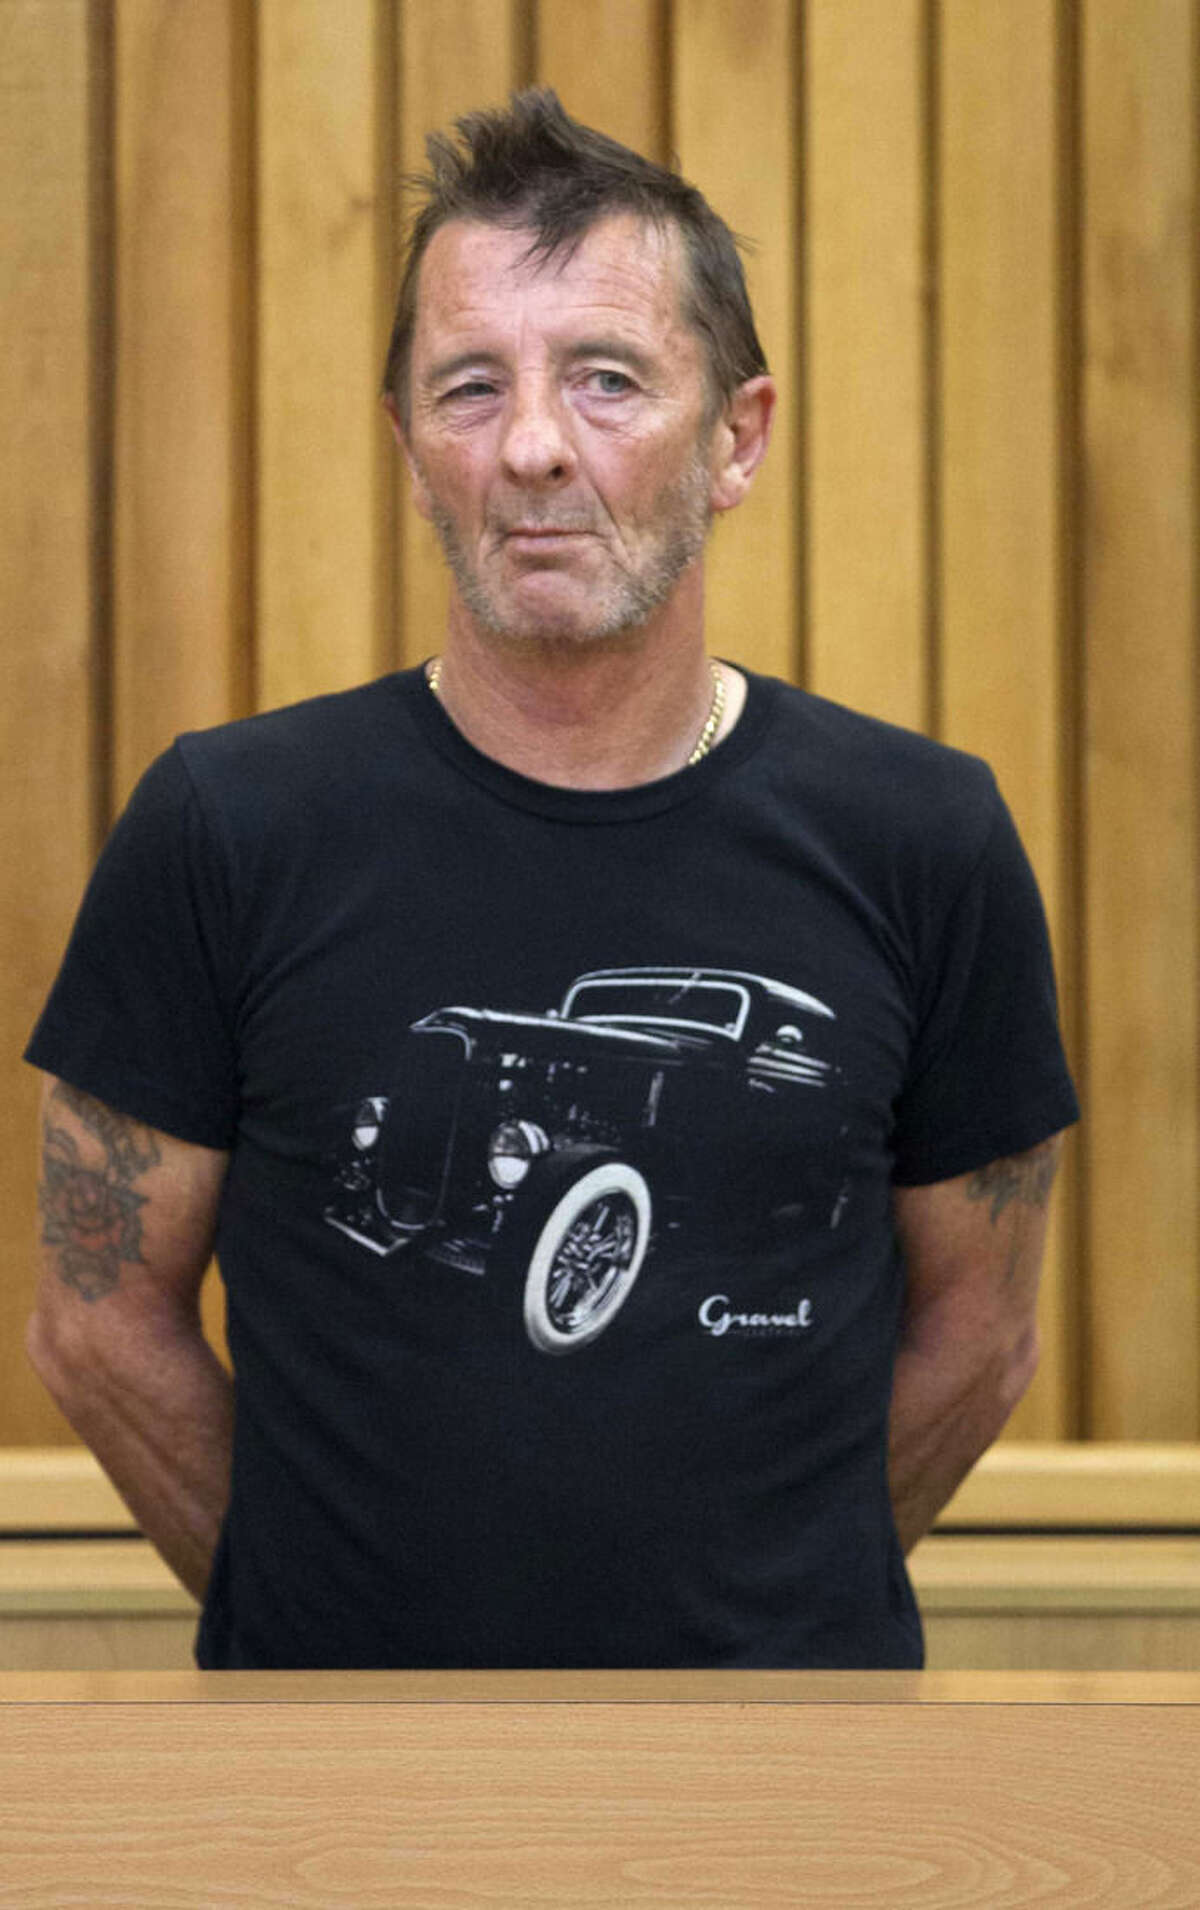 Phil Rudd, drummer for the rock band AC/DC, stands in the dock in the High Court at Tauranga, New Zealand, Wednesday, Nov. 26, 2014. The 60-year-old is charged with threatening to kill, which comes with a maximum prison sentence of seven years, as well as possessing methamphetamine and marijuana. (AP Photo/New Zealand Herald, Alan Gibson) NEW ZEALAND OUT, AUSTRALIA OUT